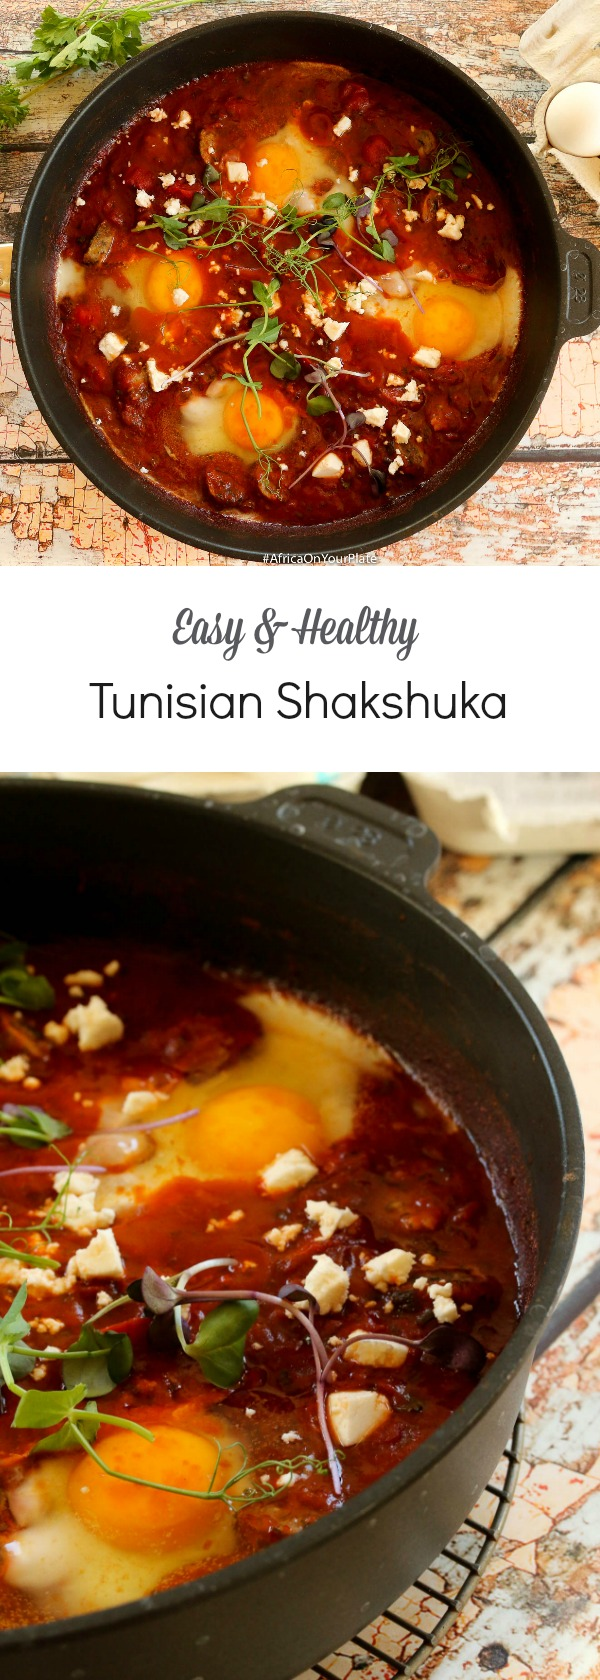 Tunisian Shakshuka - Eggs Gently Poached in a Harissa-Spiced and Herby Tomato Sauce for a Low-Calorie and Diabetic-Friendly Lunch or Dinner